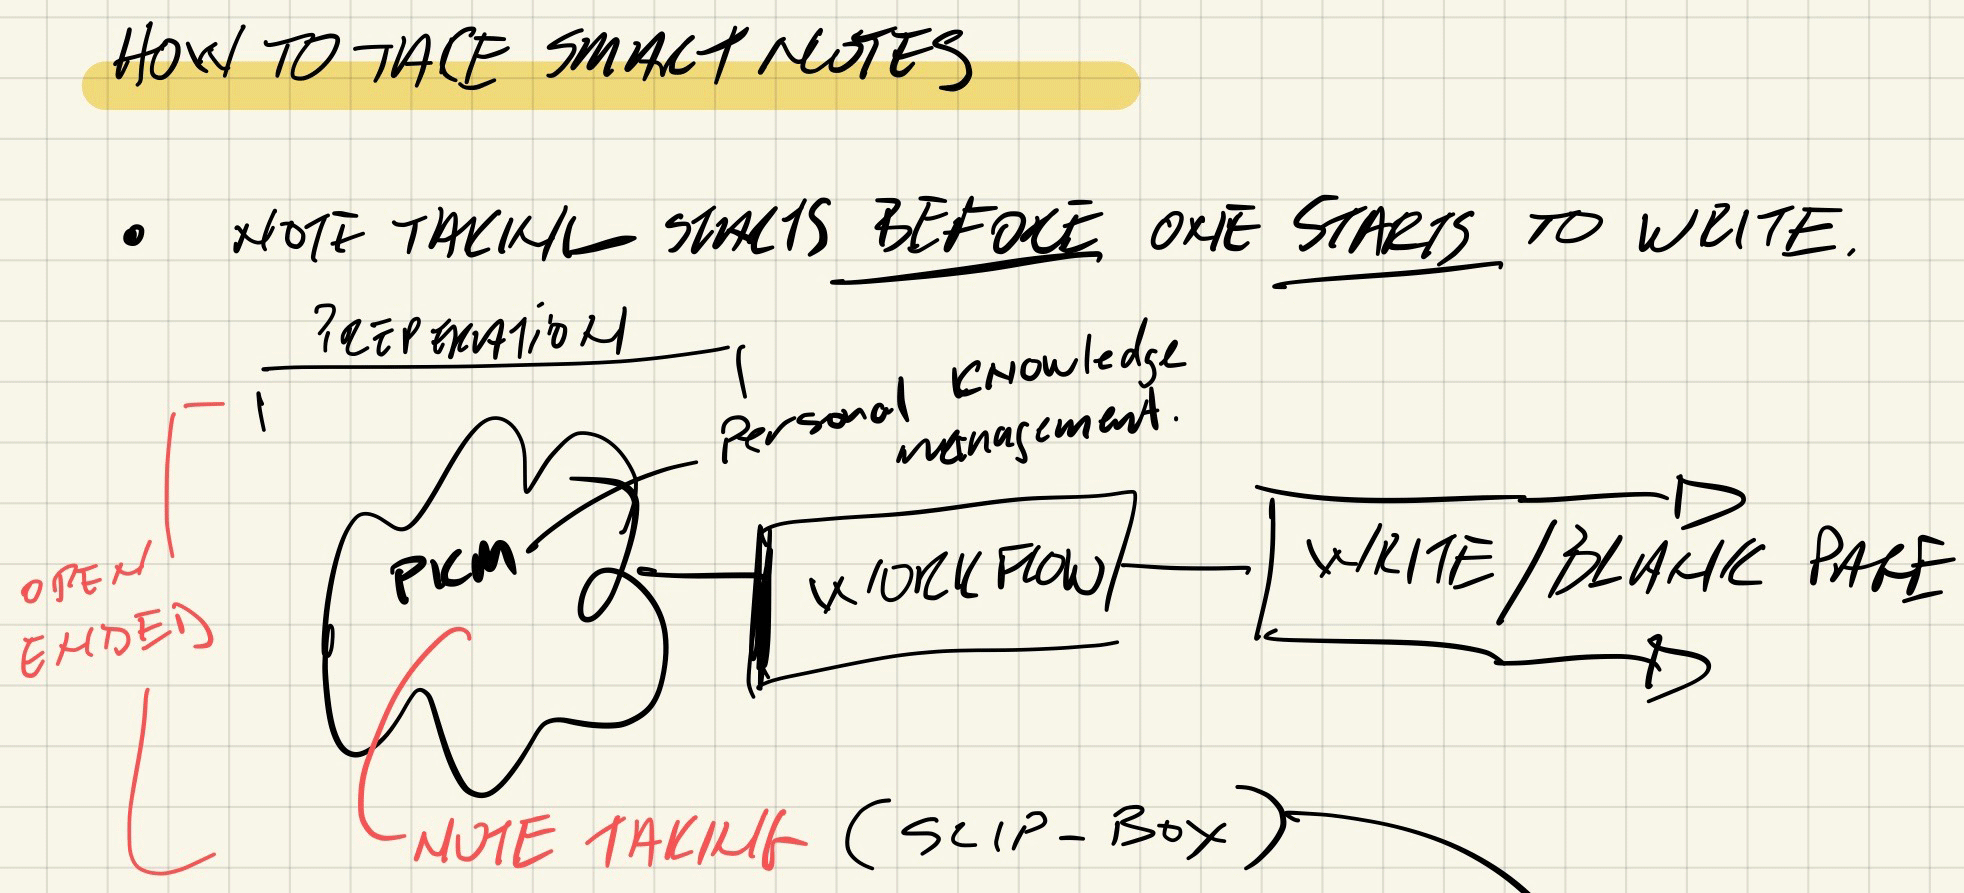 Andre's Personal Knowledge Management (PKM) overall flow map